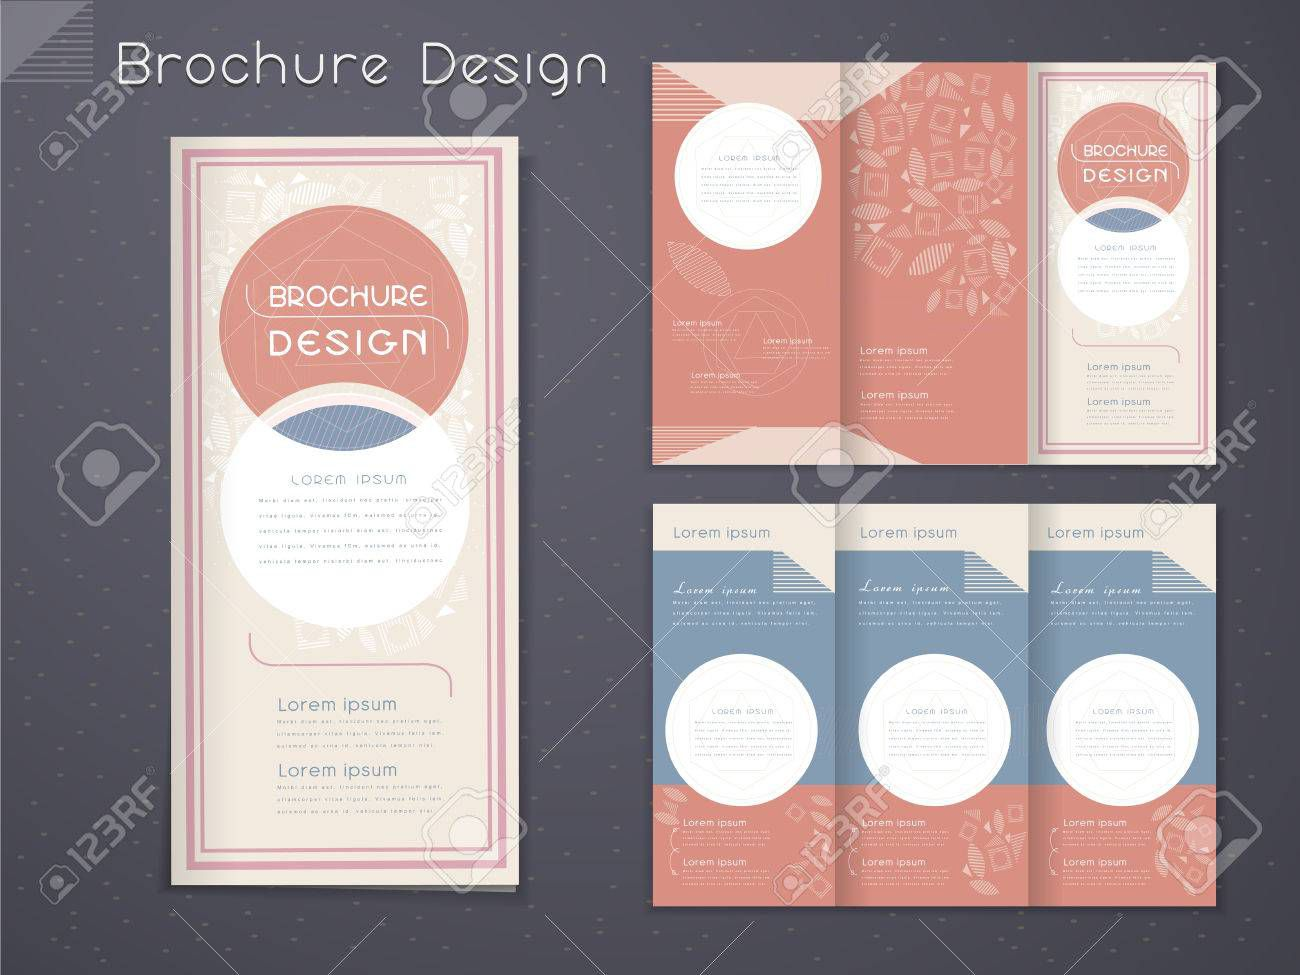 003 Awful 3 Fold Brochure Template Free Picture  Word DownloadFull